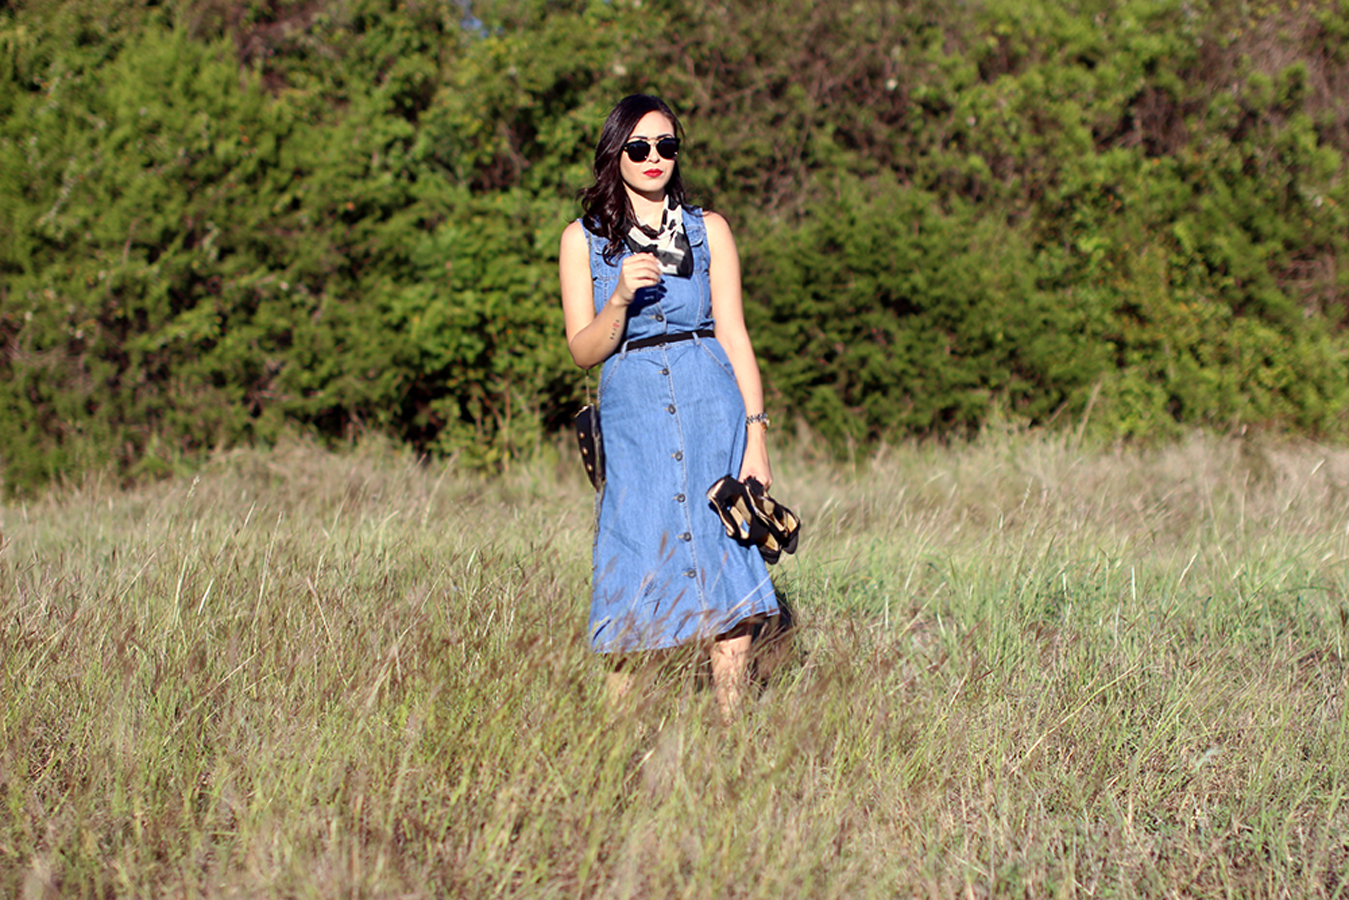 FIXIN-TO-THRILL-PINK-SILVER-FASHION-DENIM-DRESS-STRAPPY-HEELS-TREND-FALL-OCTOBER-ATX-AUSTIN-STYLE-BLOG-FW15-TRENDY-CHIC-GLAM-TEXAS-9